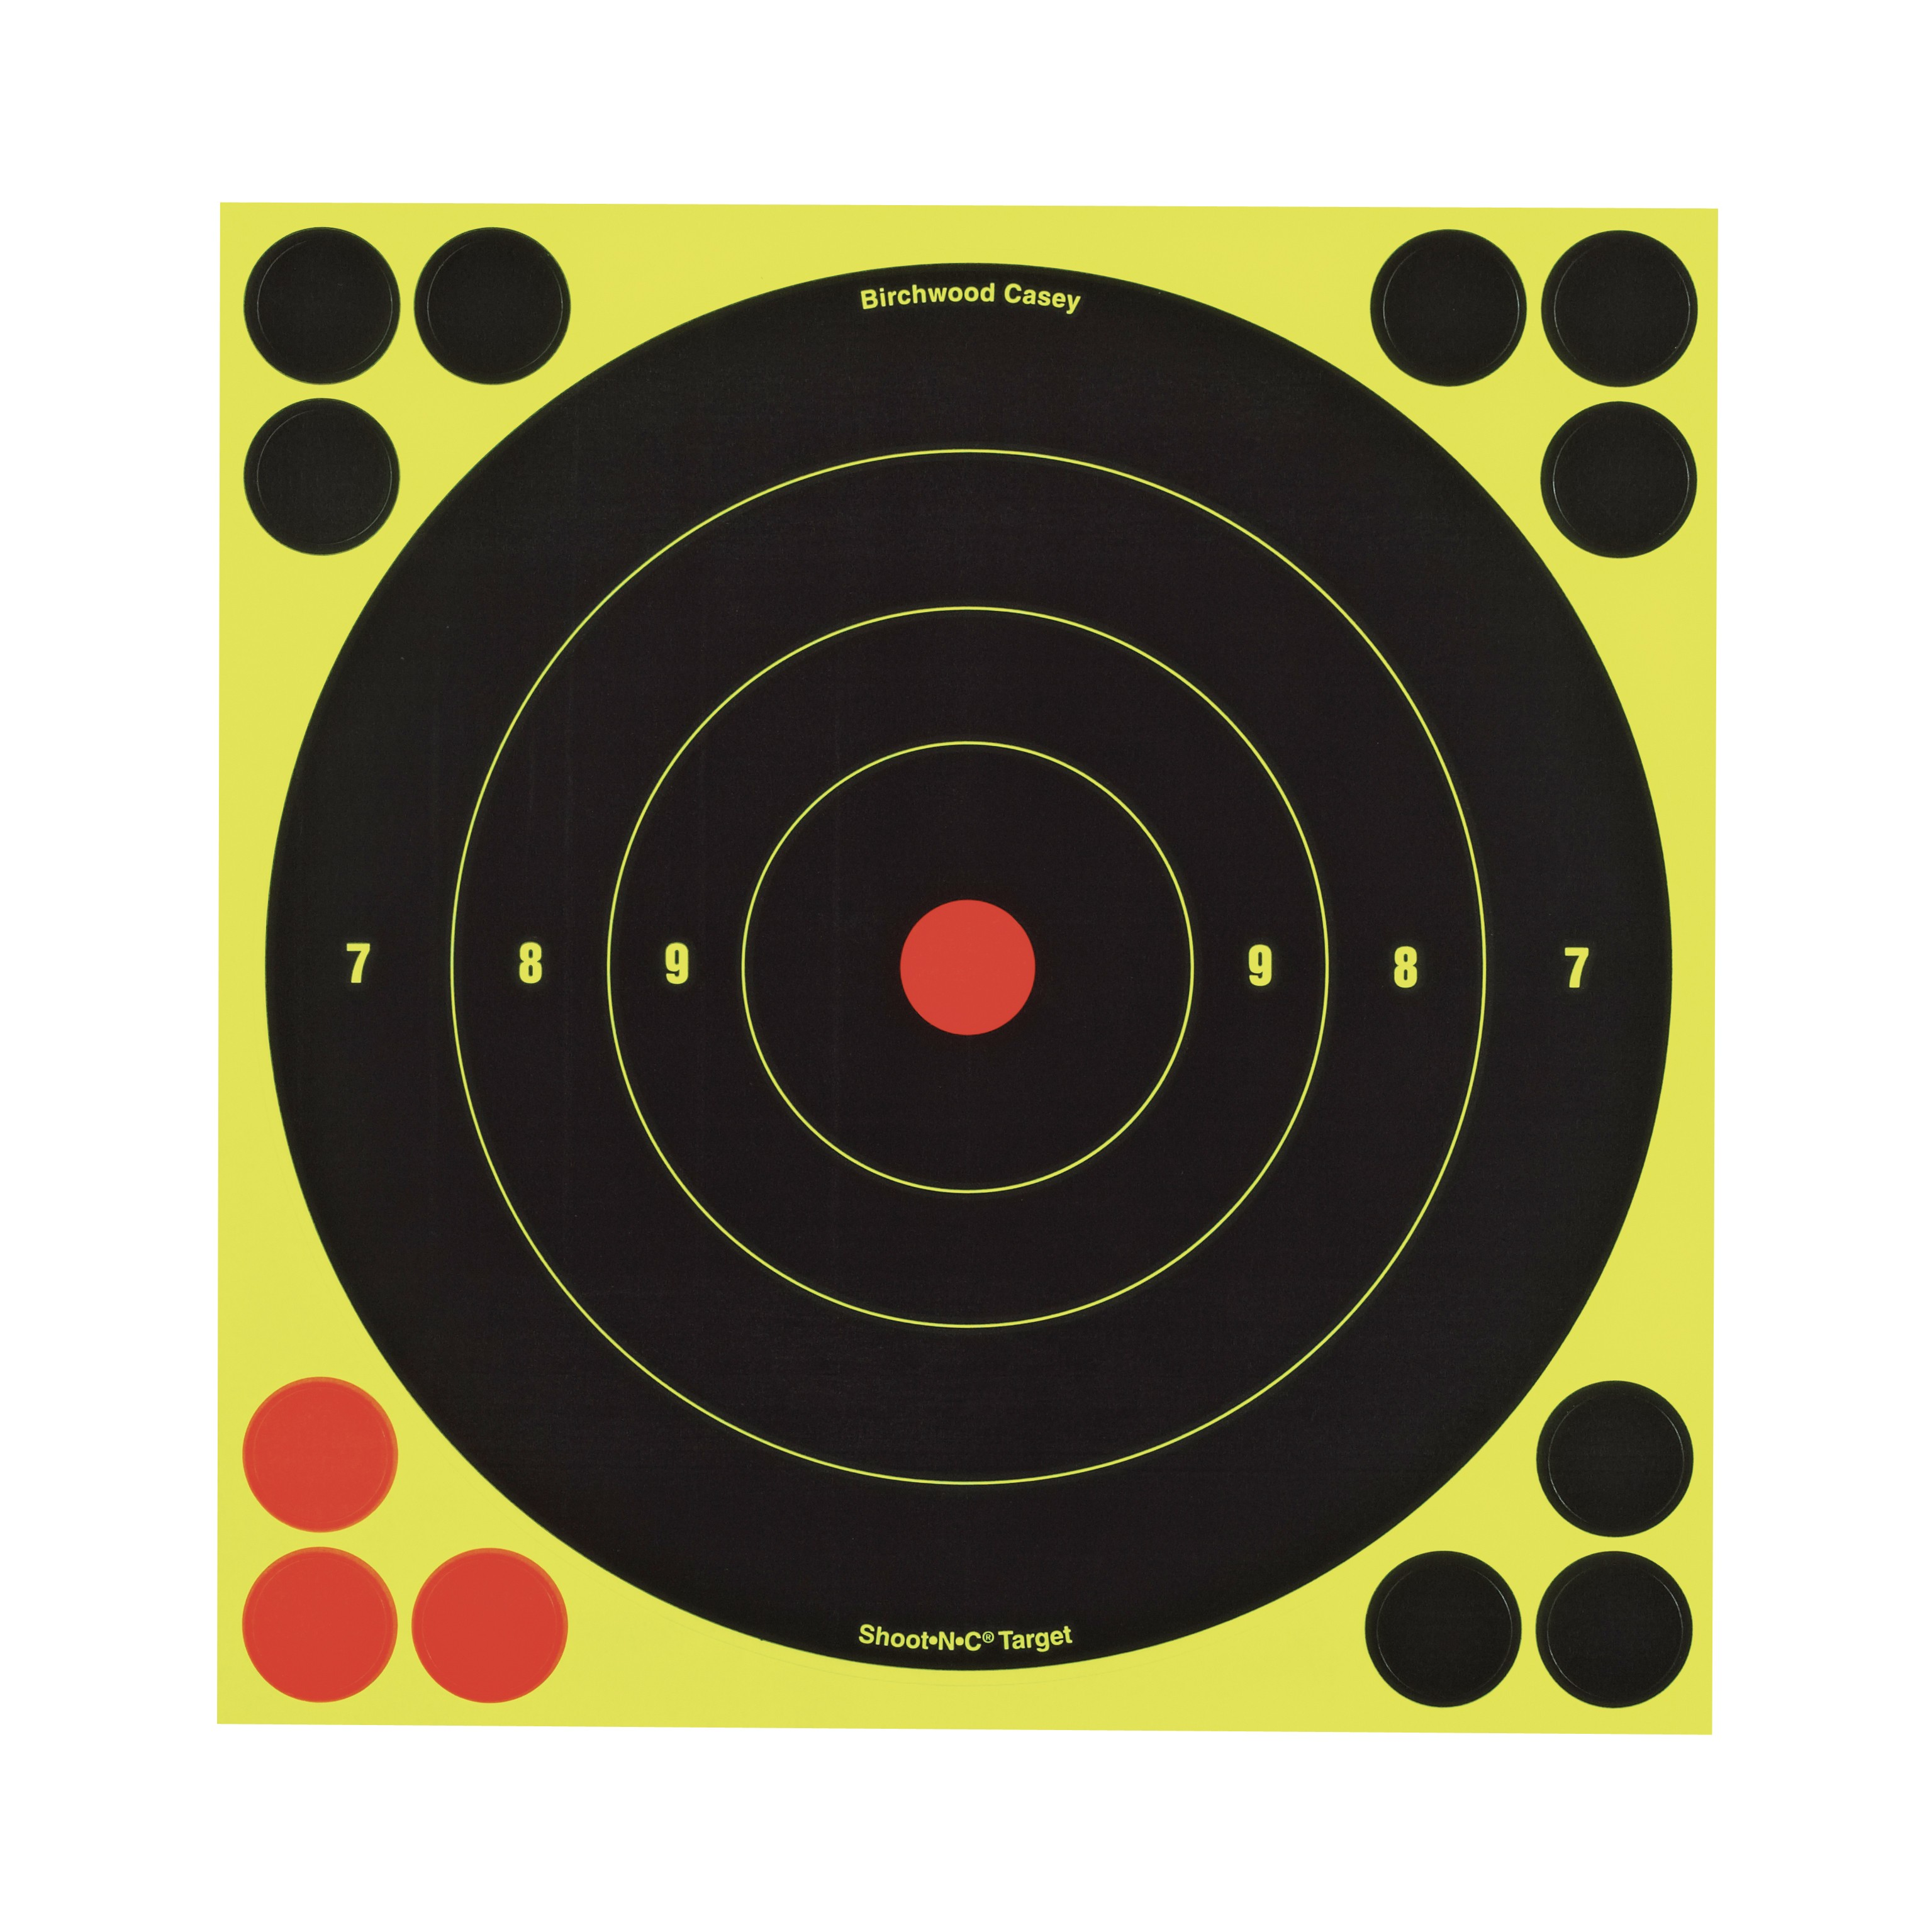 "Birchwood Casey Shoot N C 8"" Bull's-eye Target"